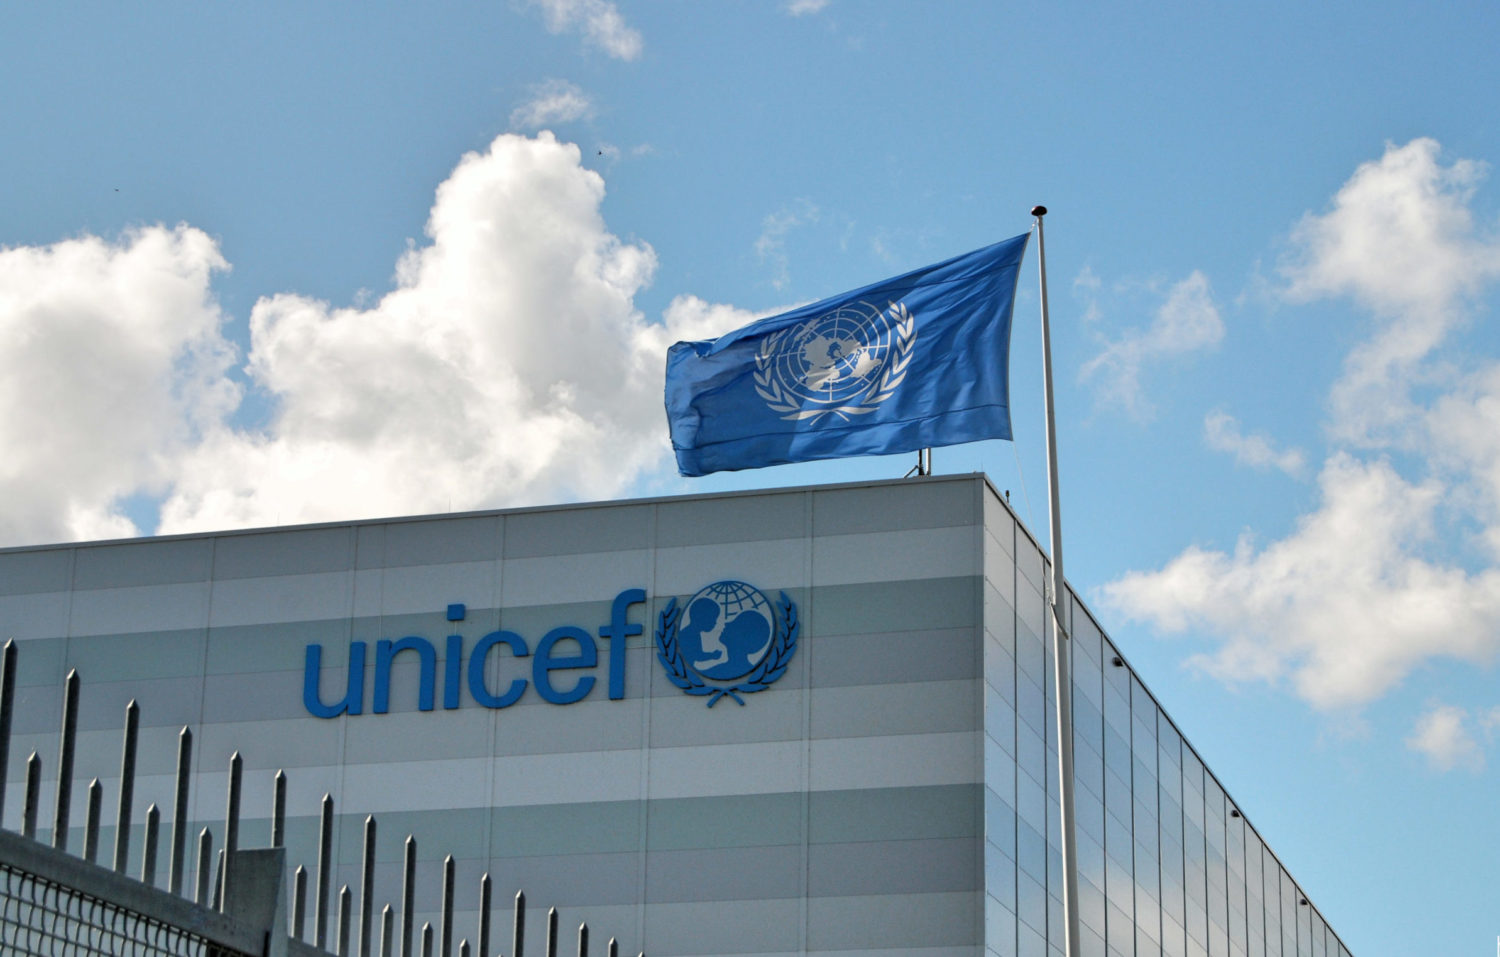 Coronavirus: UNICEF urges public to seek information from trusted sources - Vanguard News